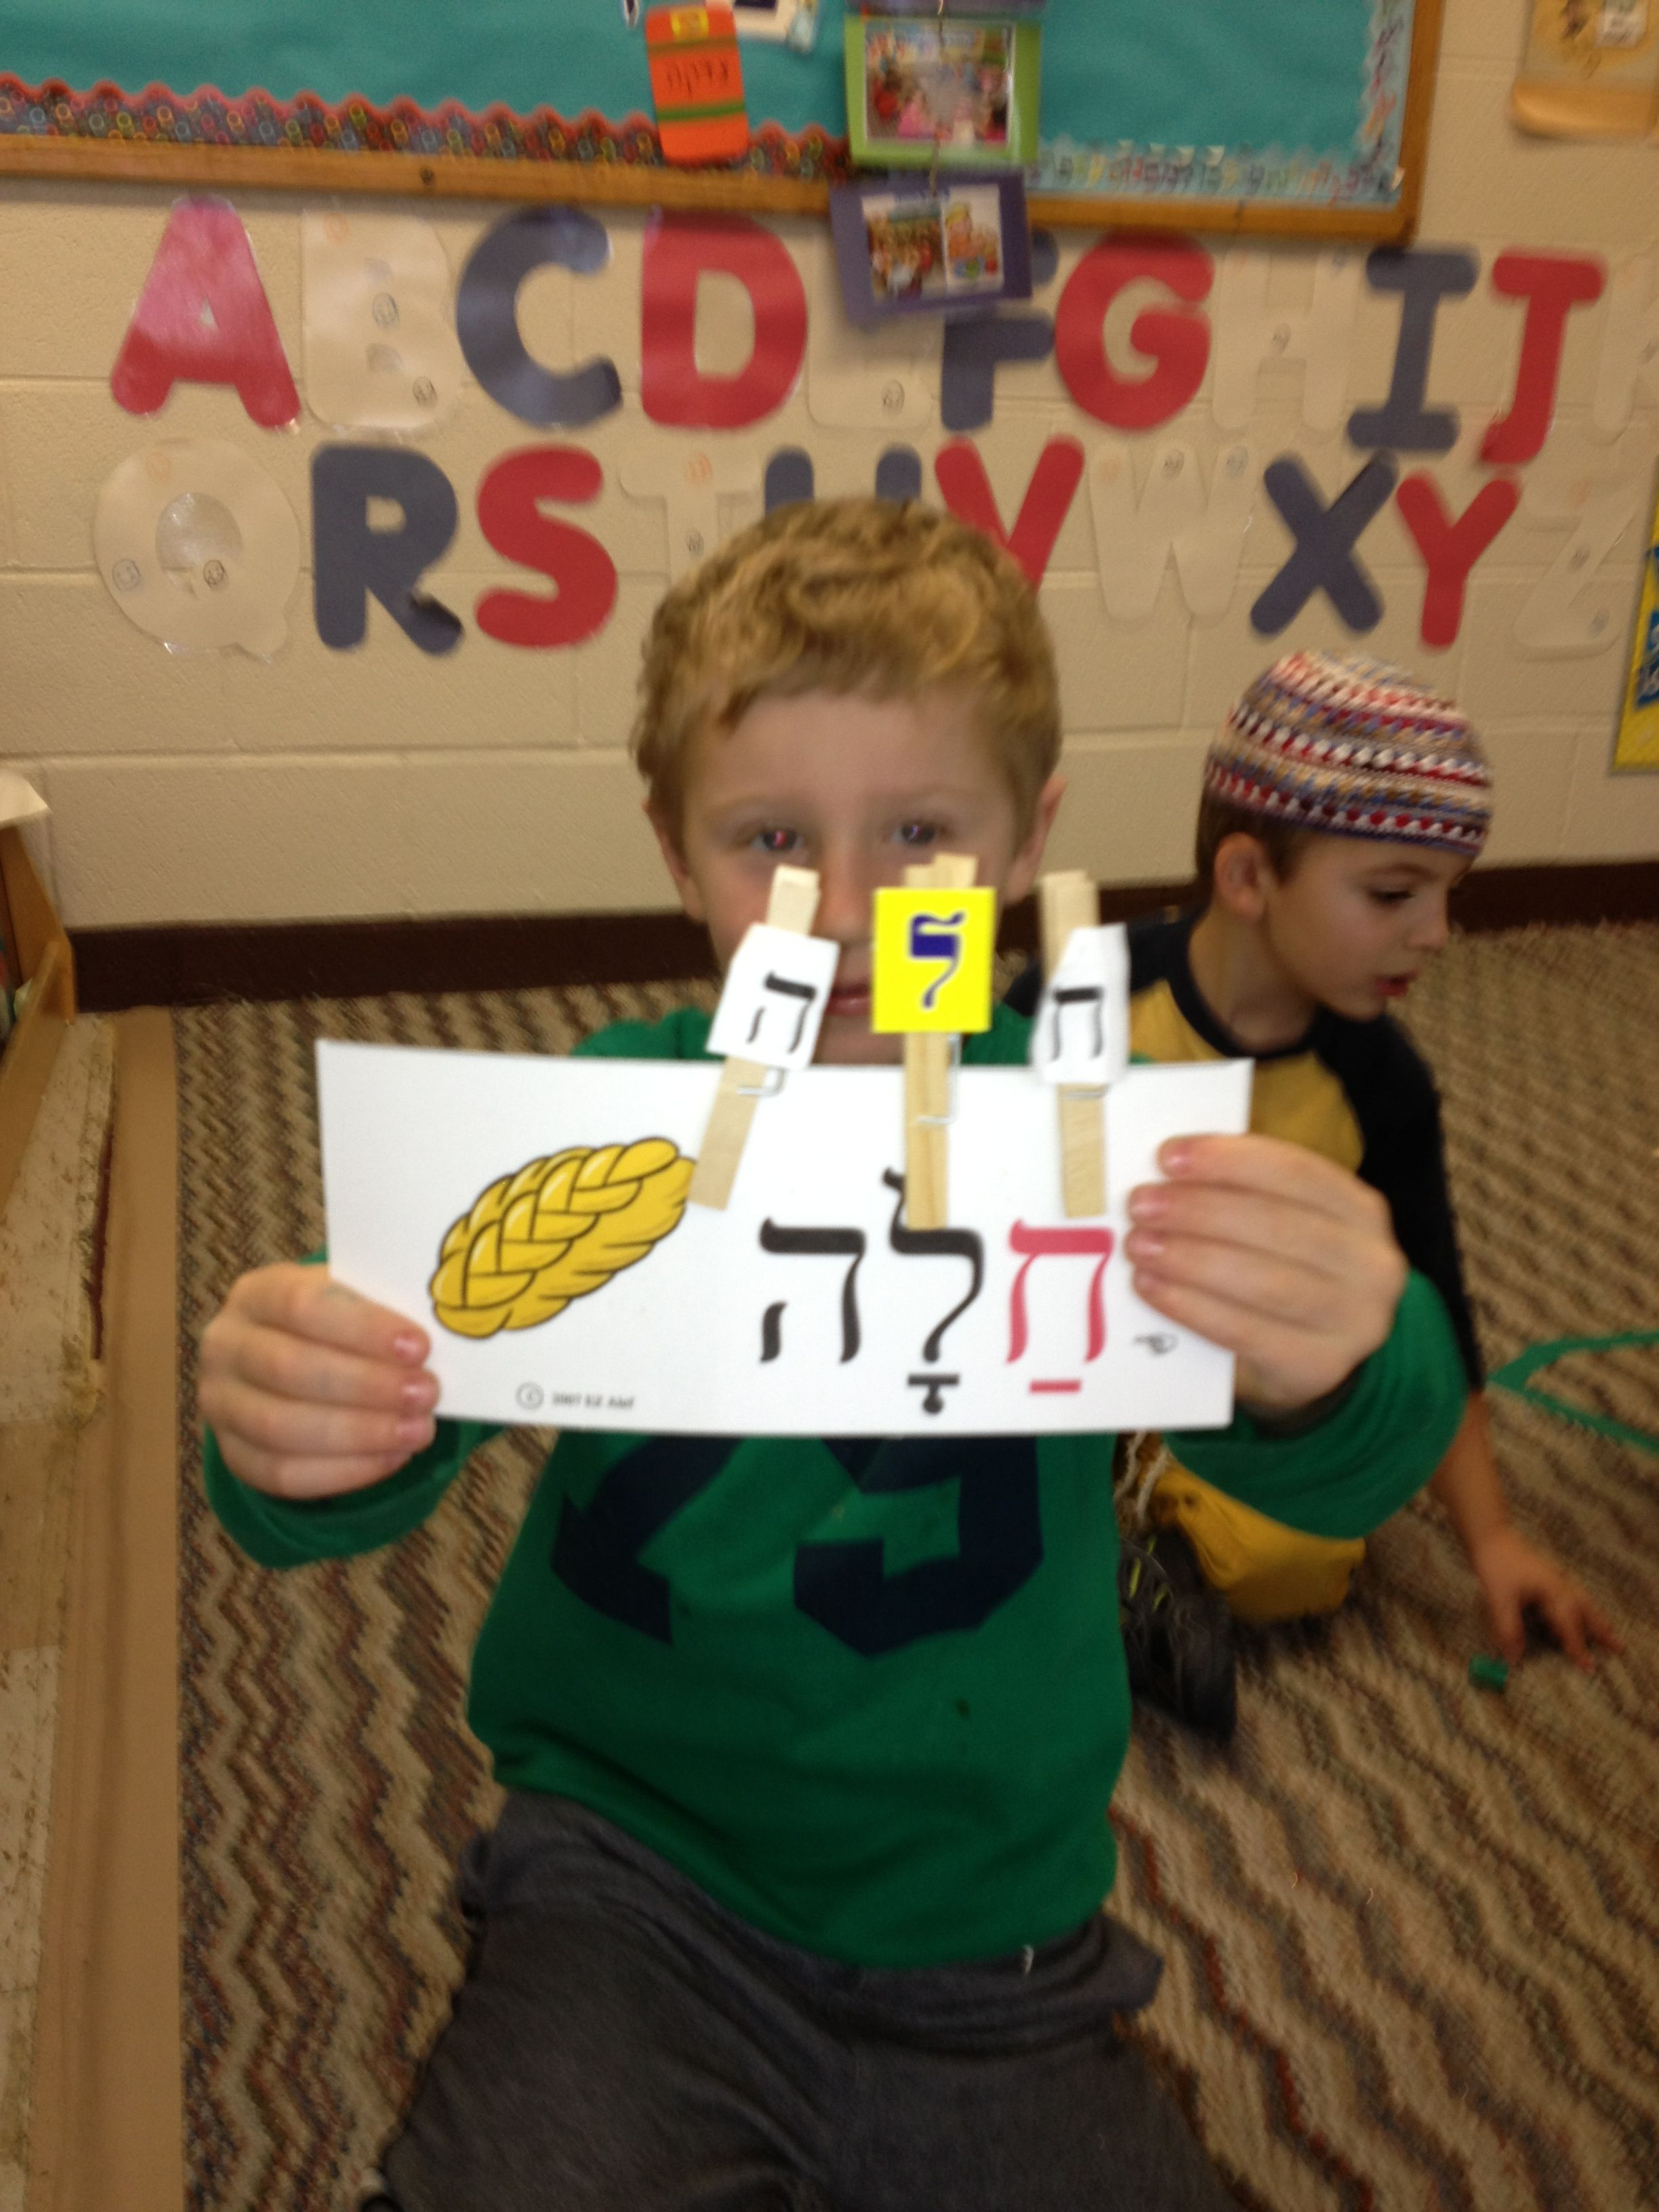 Using Clothespin Attached With Alef Bet The Kids Spelled